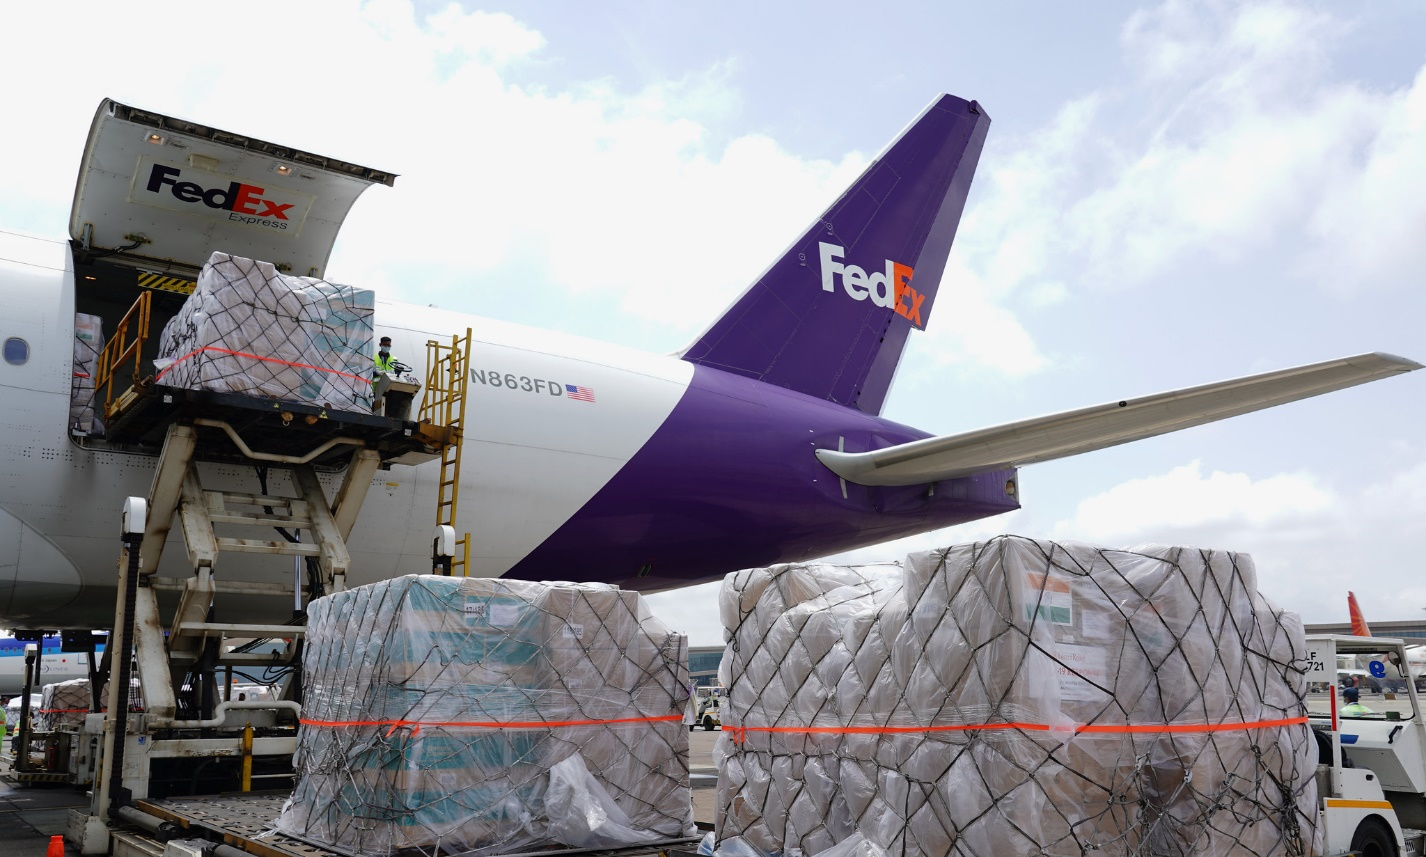 FedEx extends support, donates third dedicated charter flight carrying critical COVID-19 aid to India